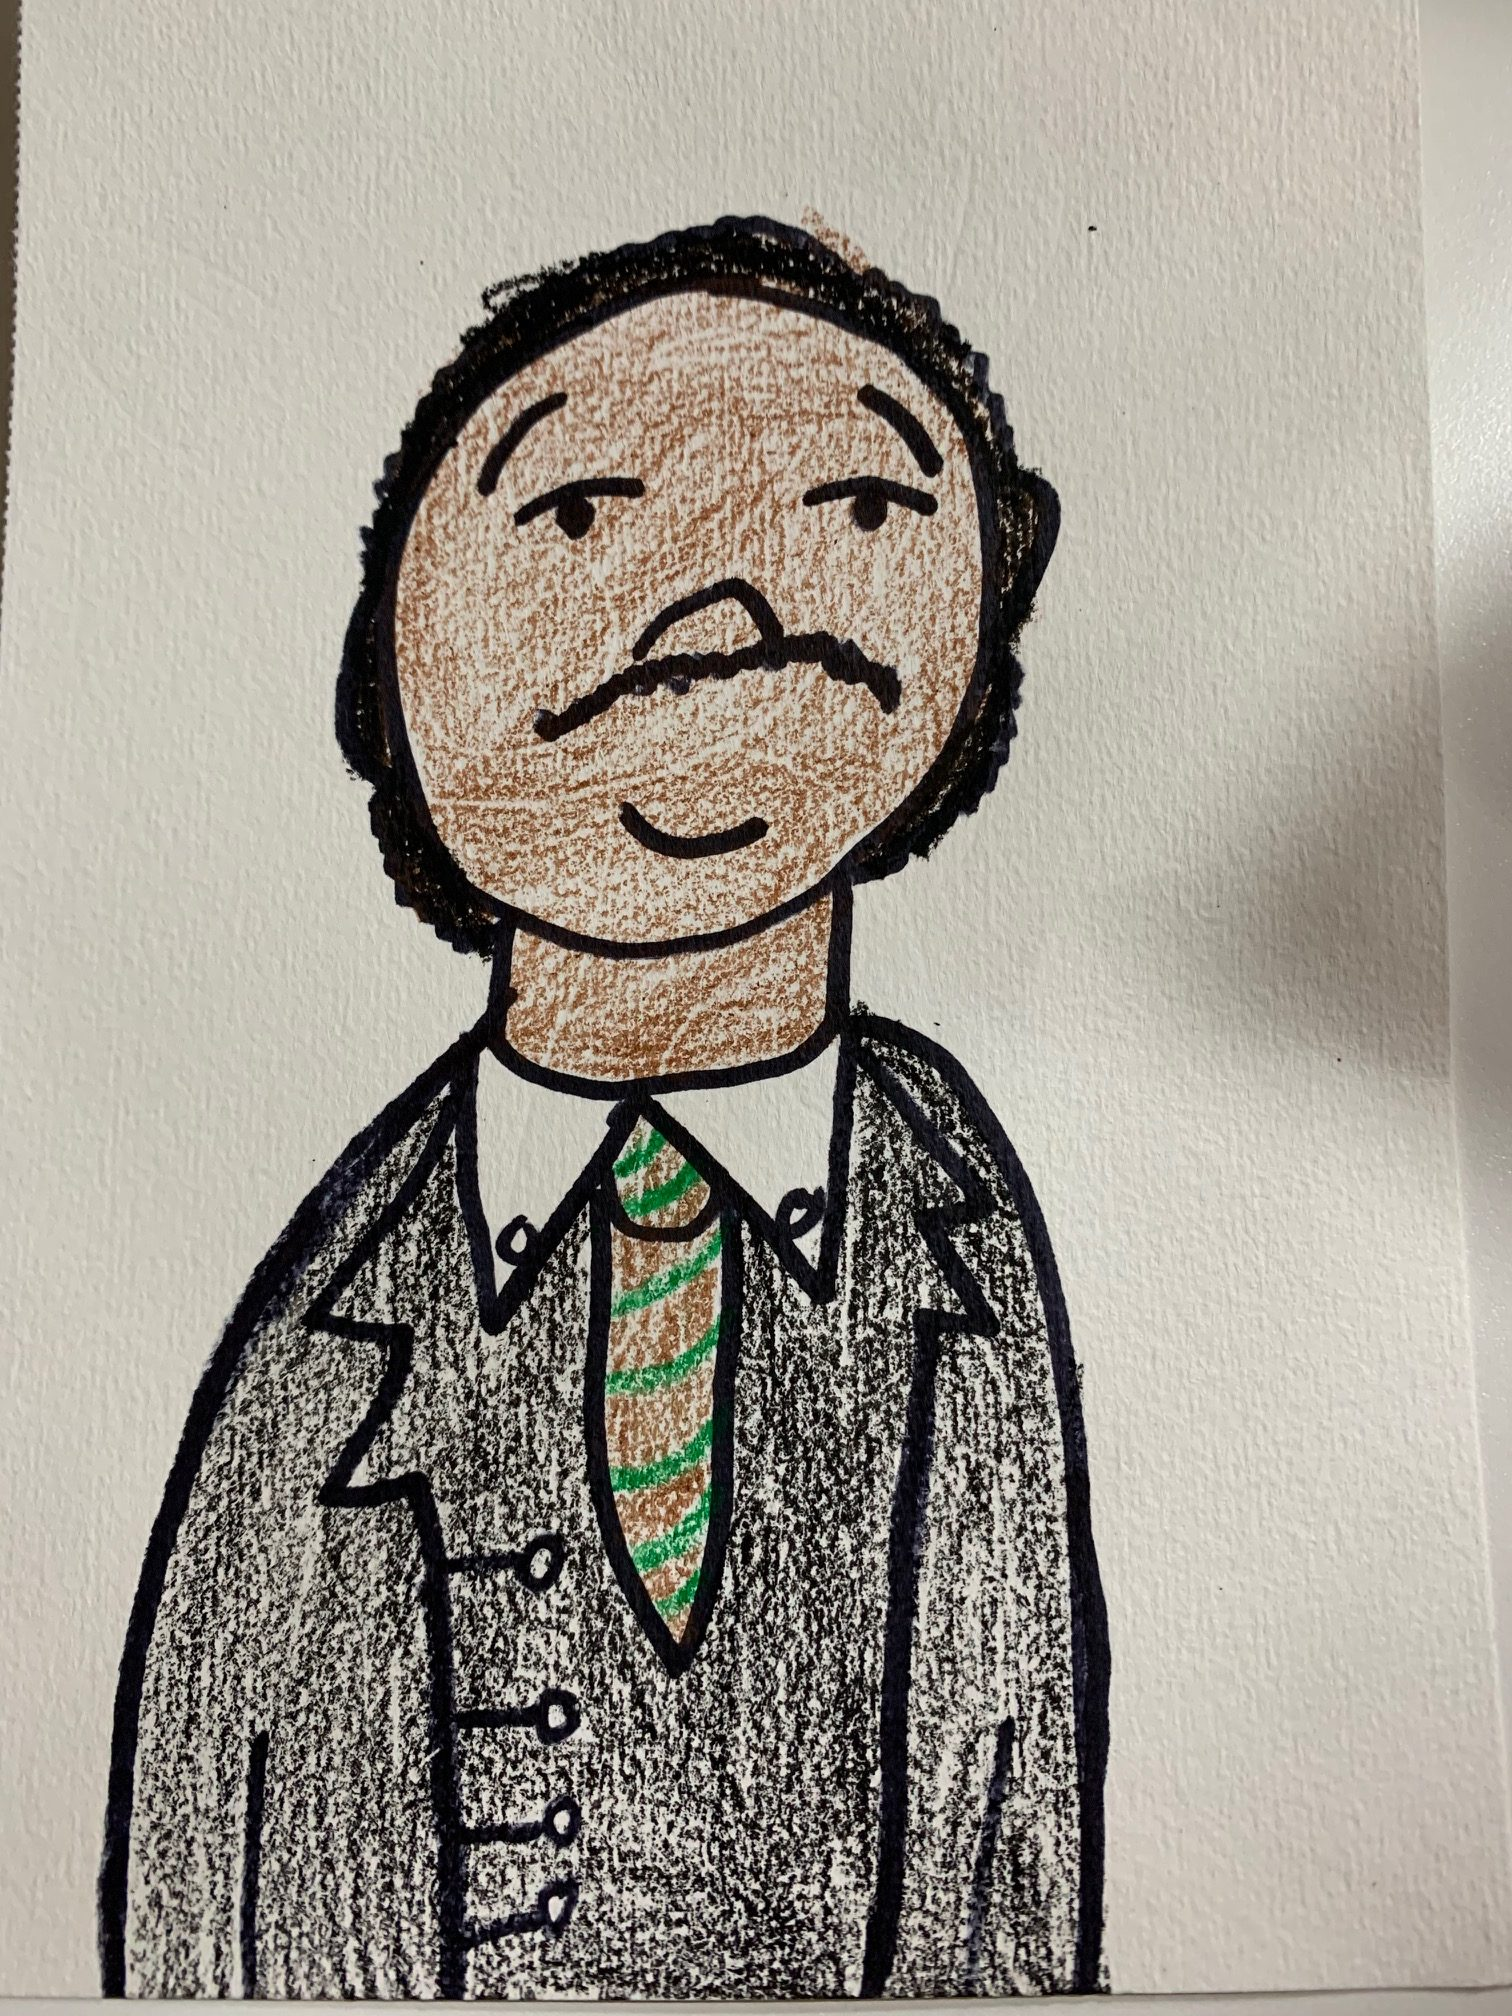 SEA Lana M 9 Martin Luther King Jr. Colored Pencil